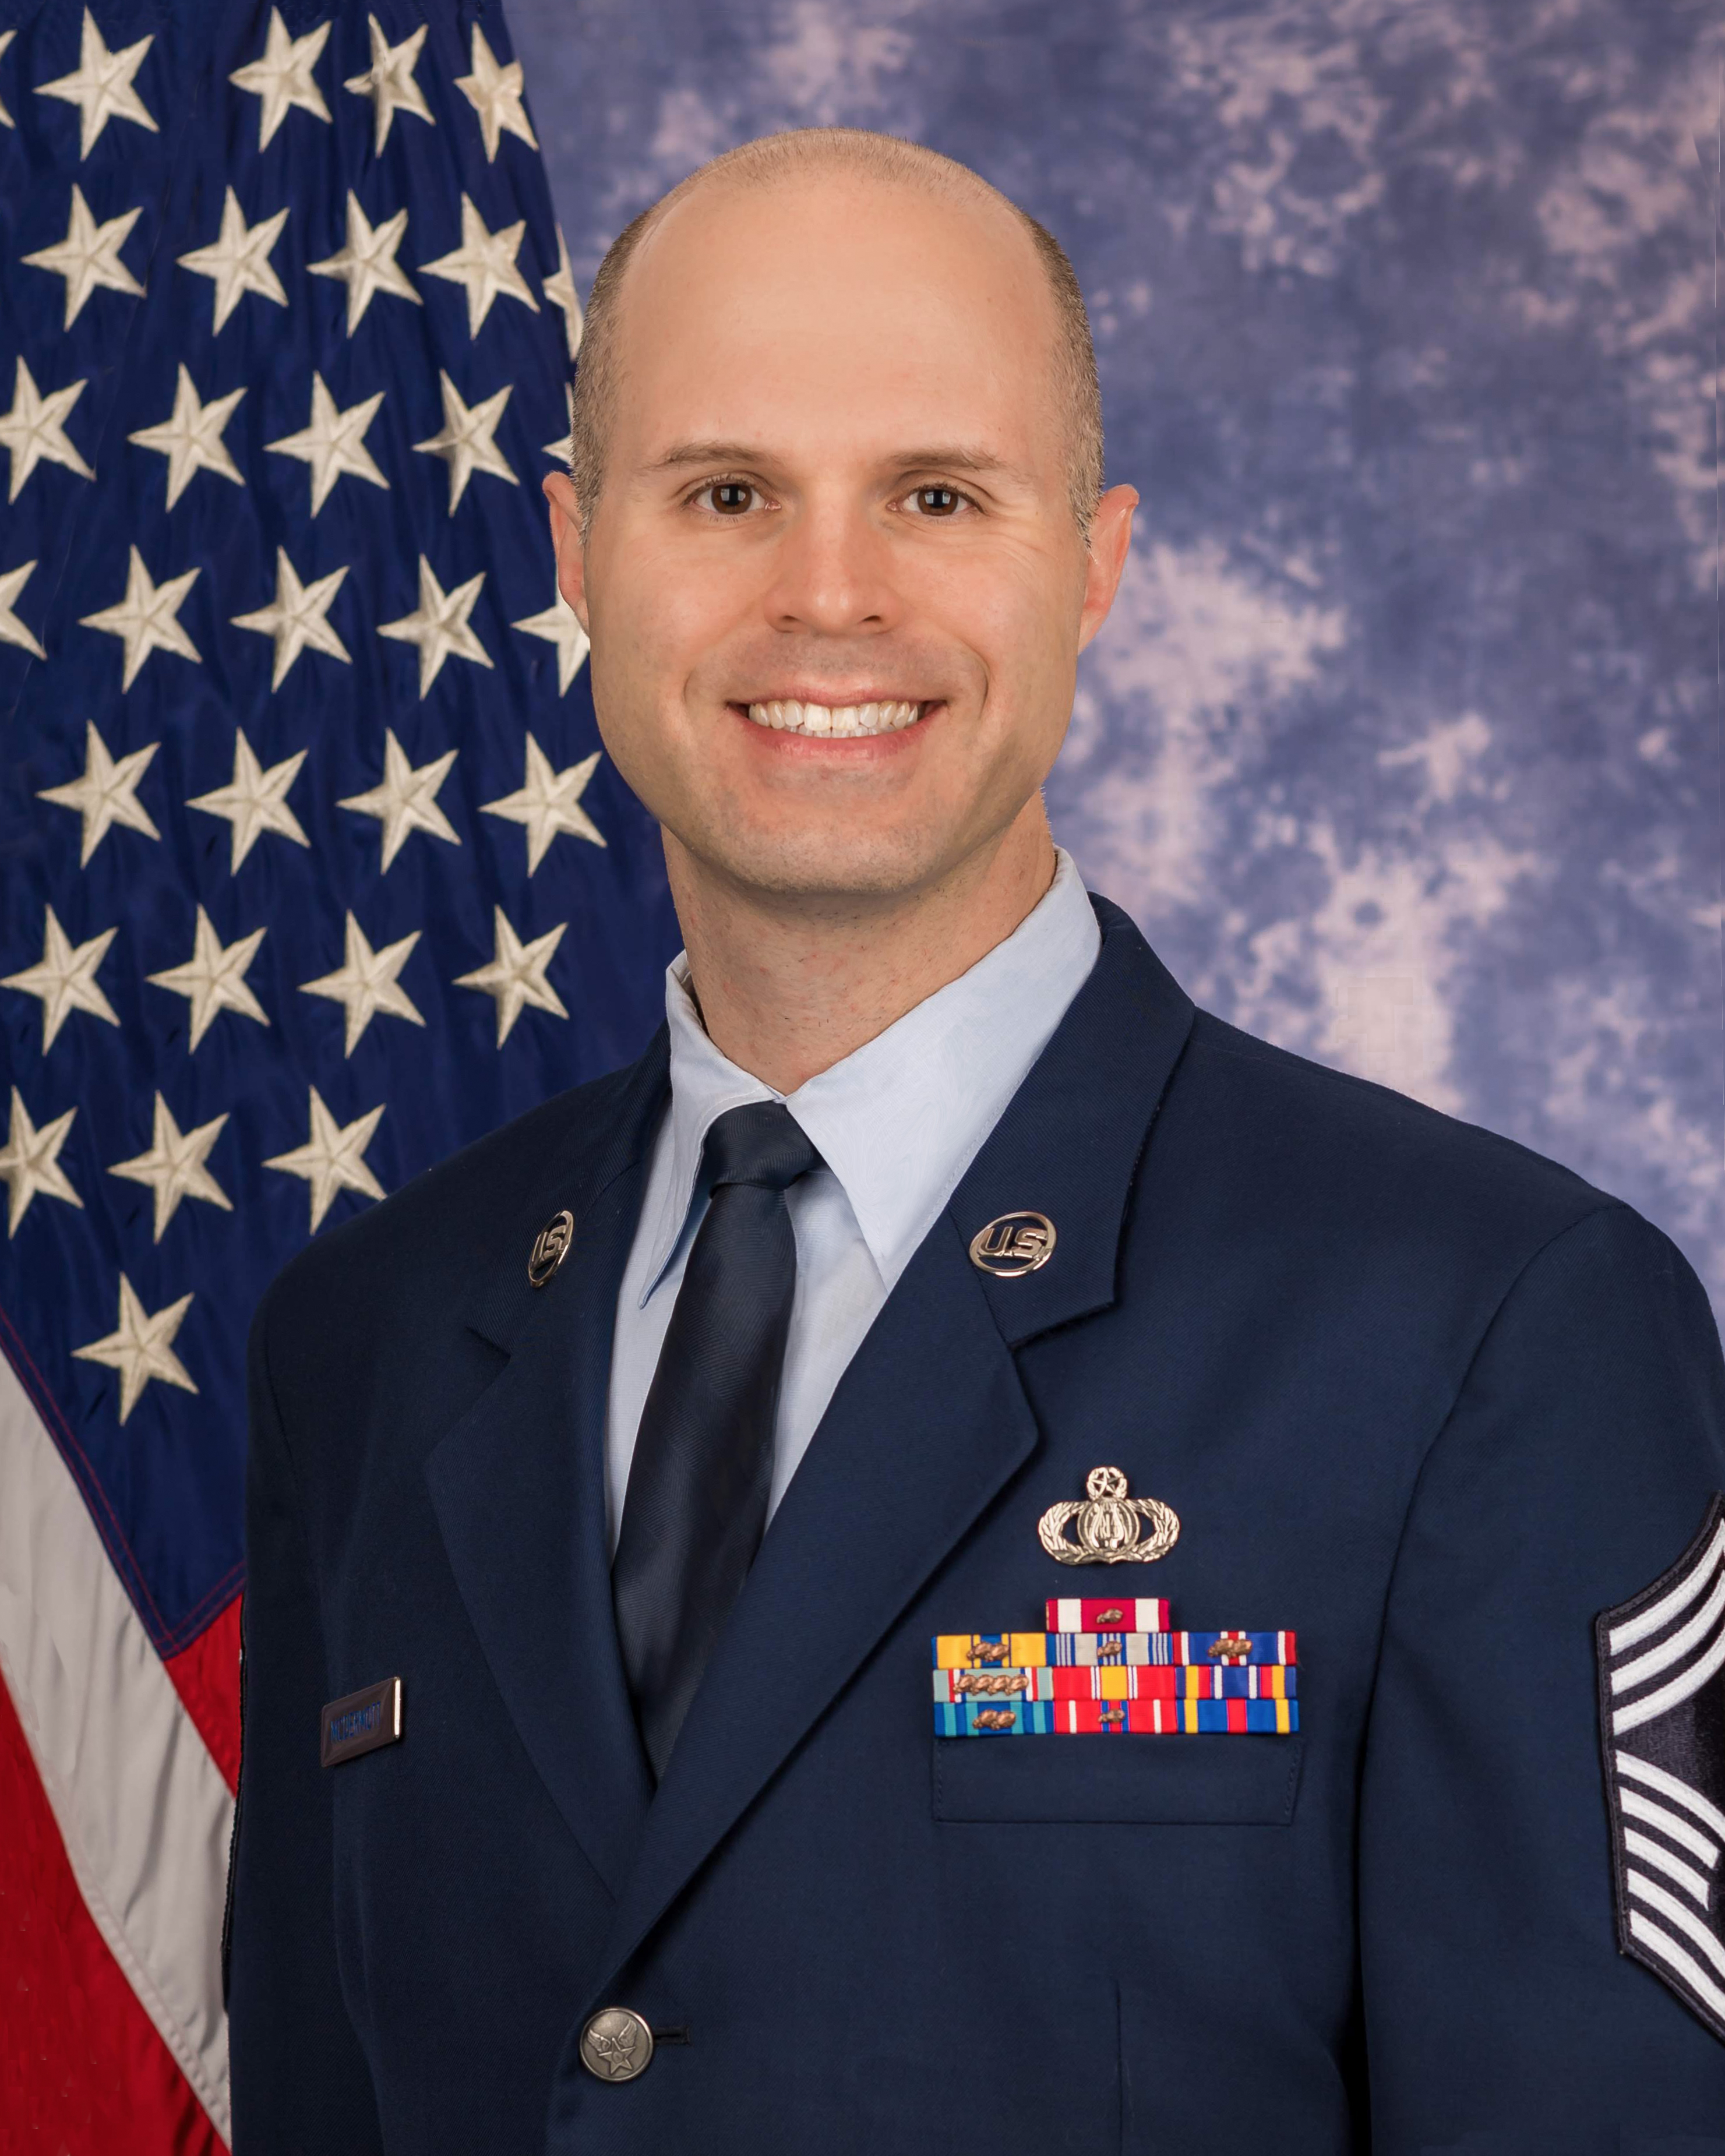 Chief Master Sgt. Michael Piersol